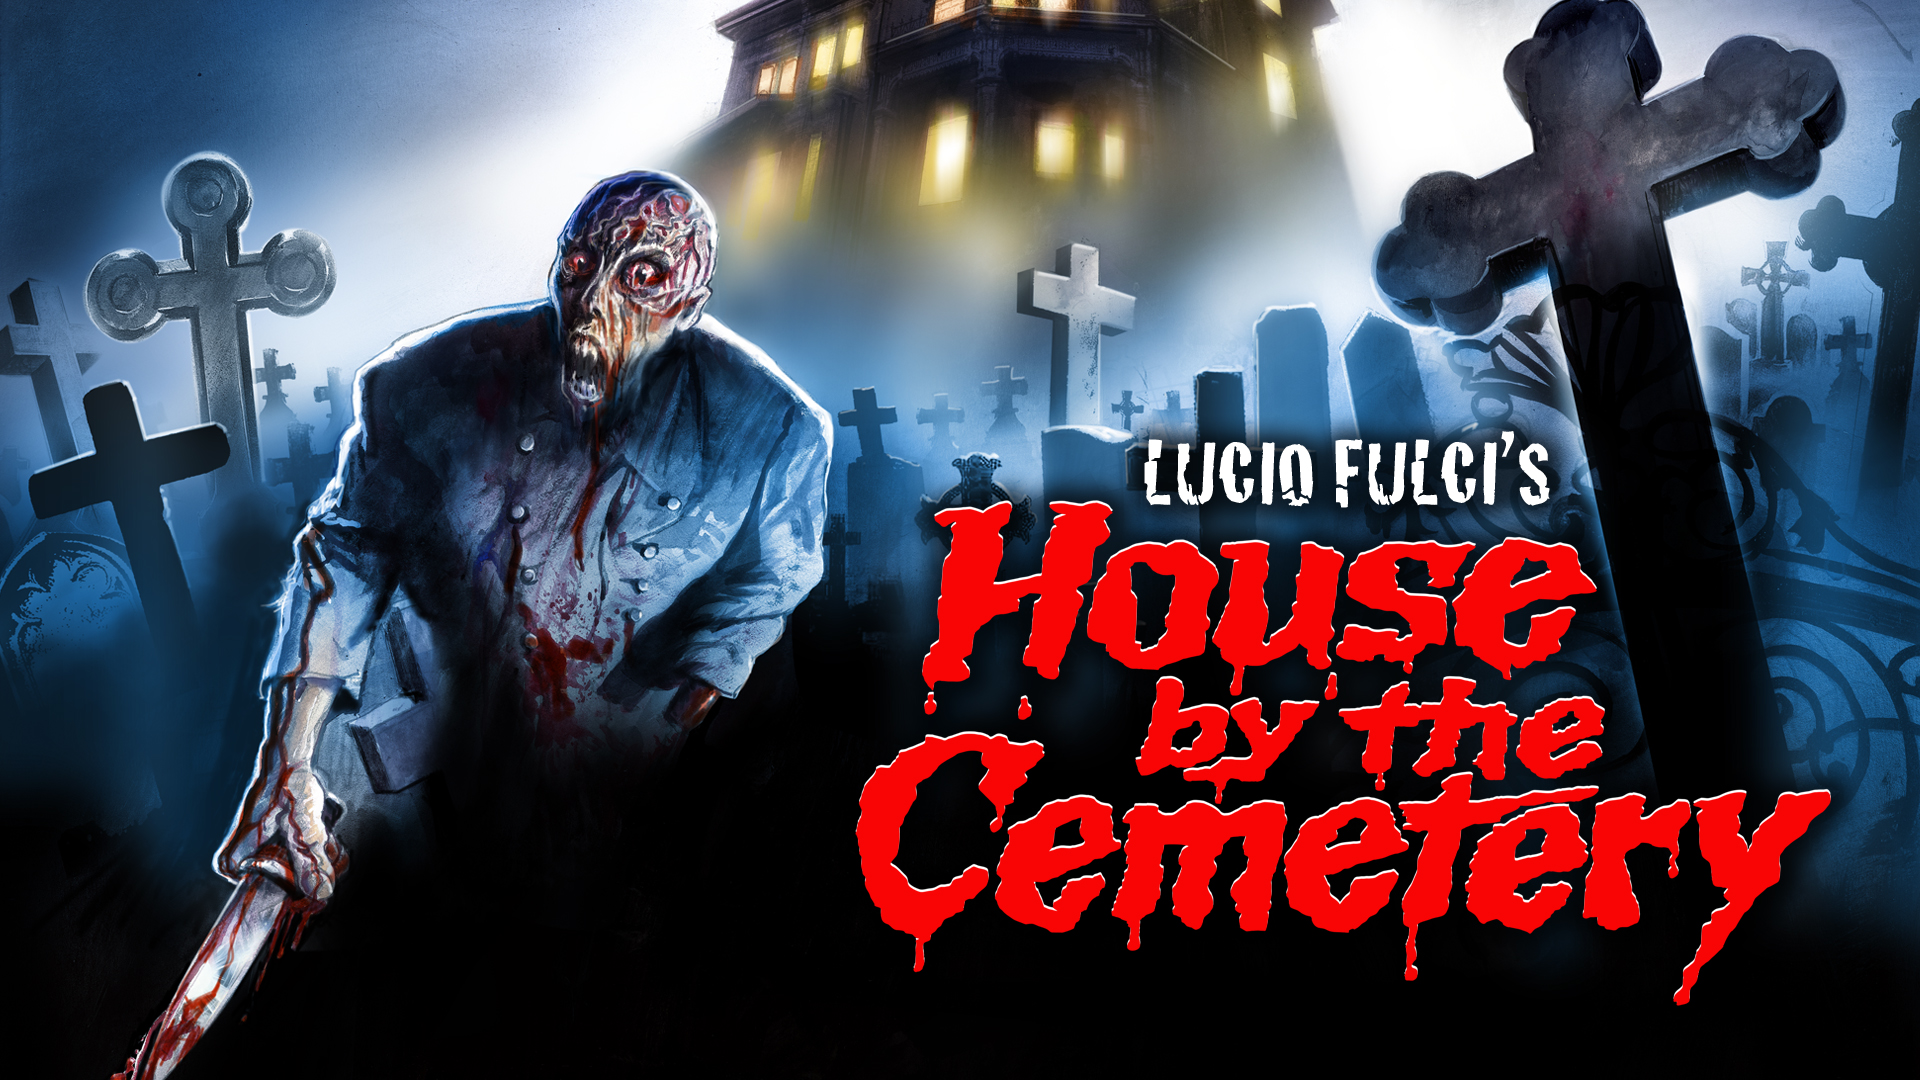 The House by the Cemetery (Restored Version)